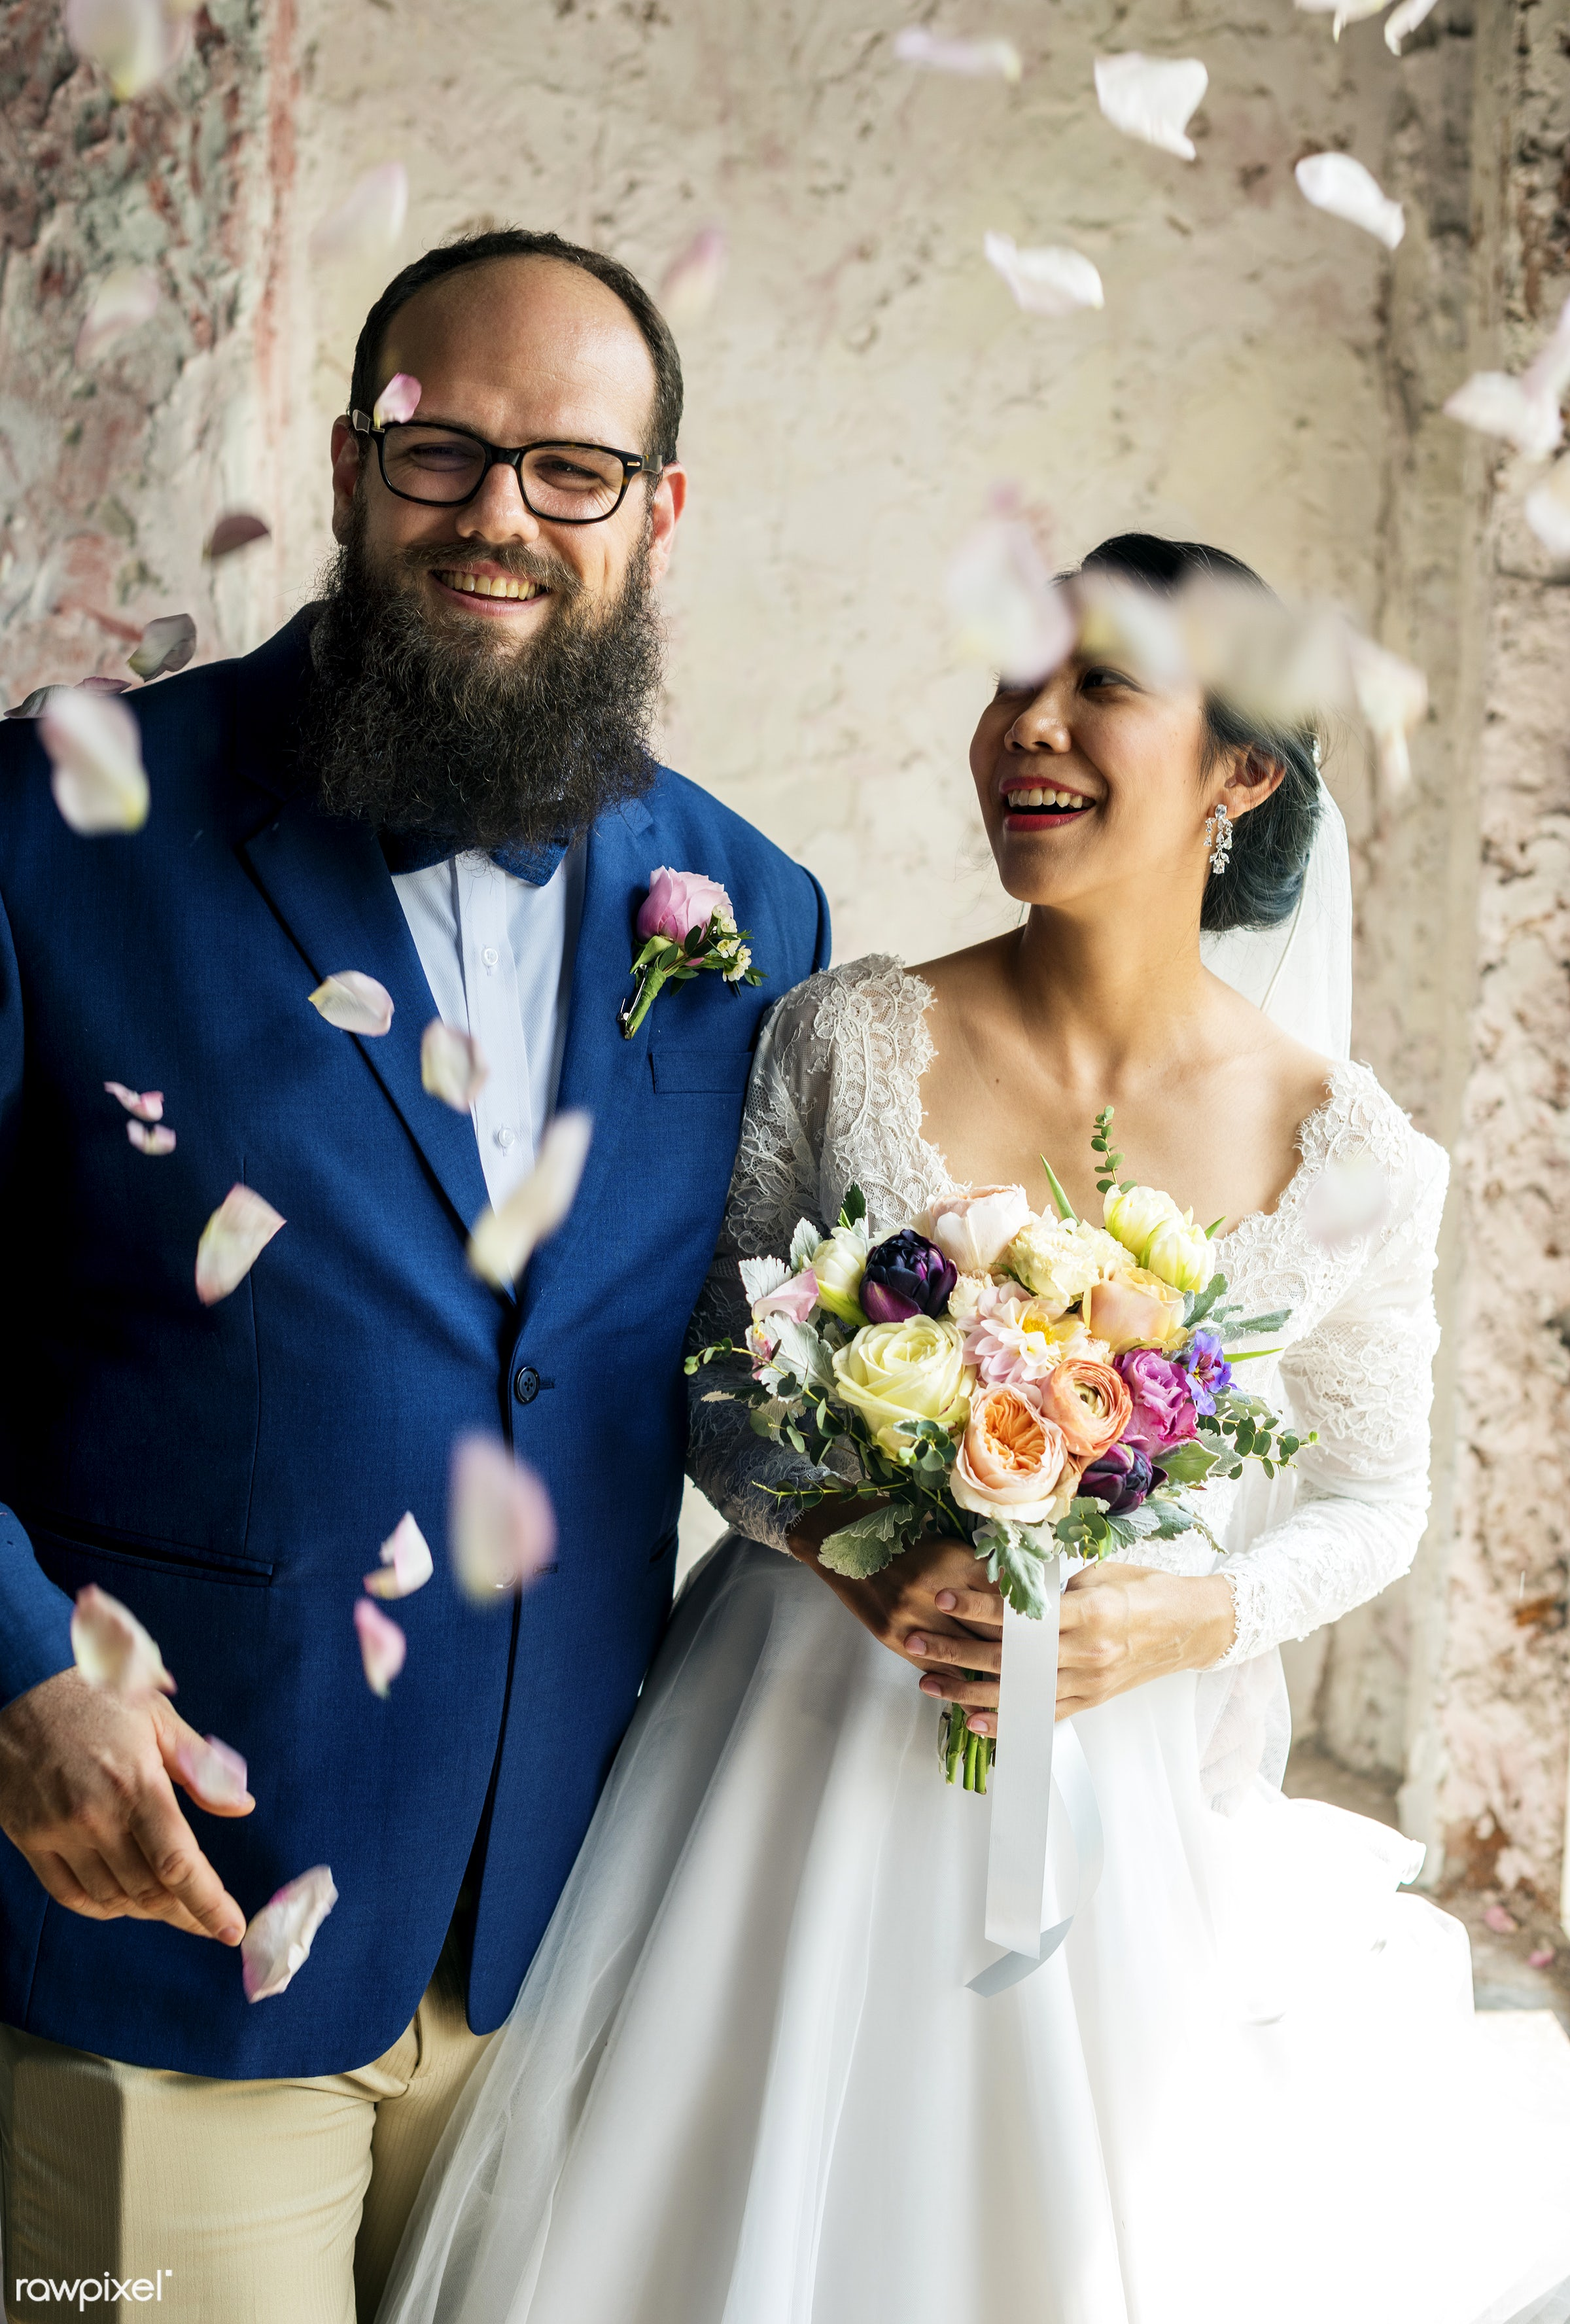 petals, diverse, occasion, throwing, asian, caucasian, love, married, spouse, couple, bride, flowers, cheerful, smiling,...